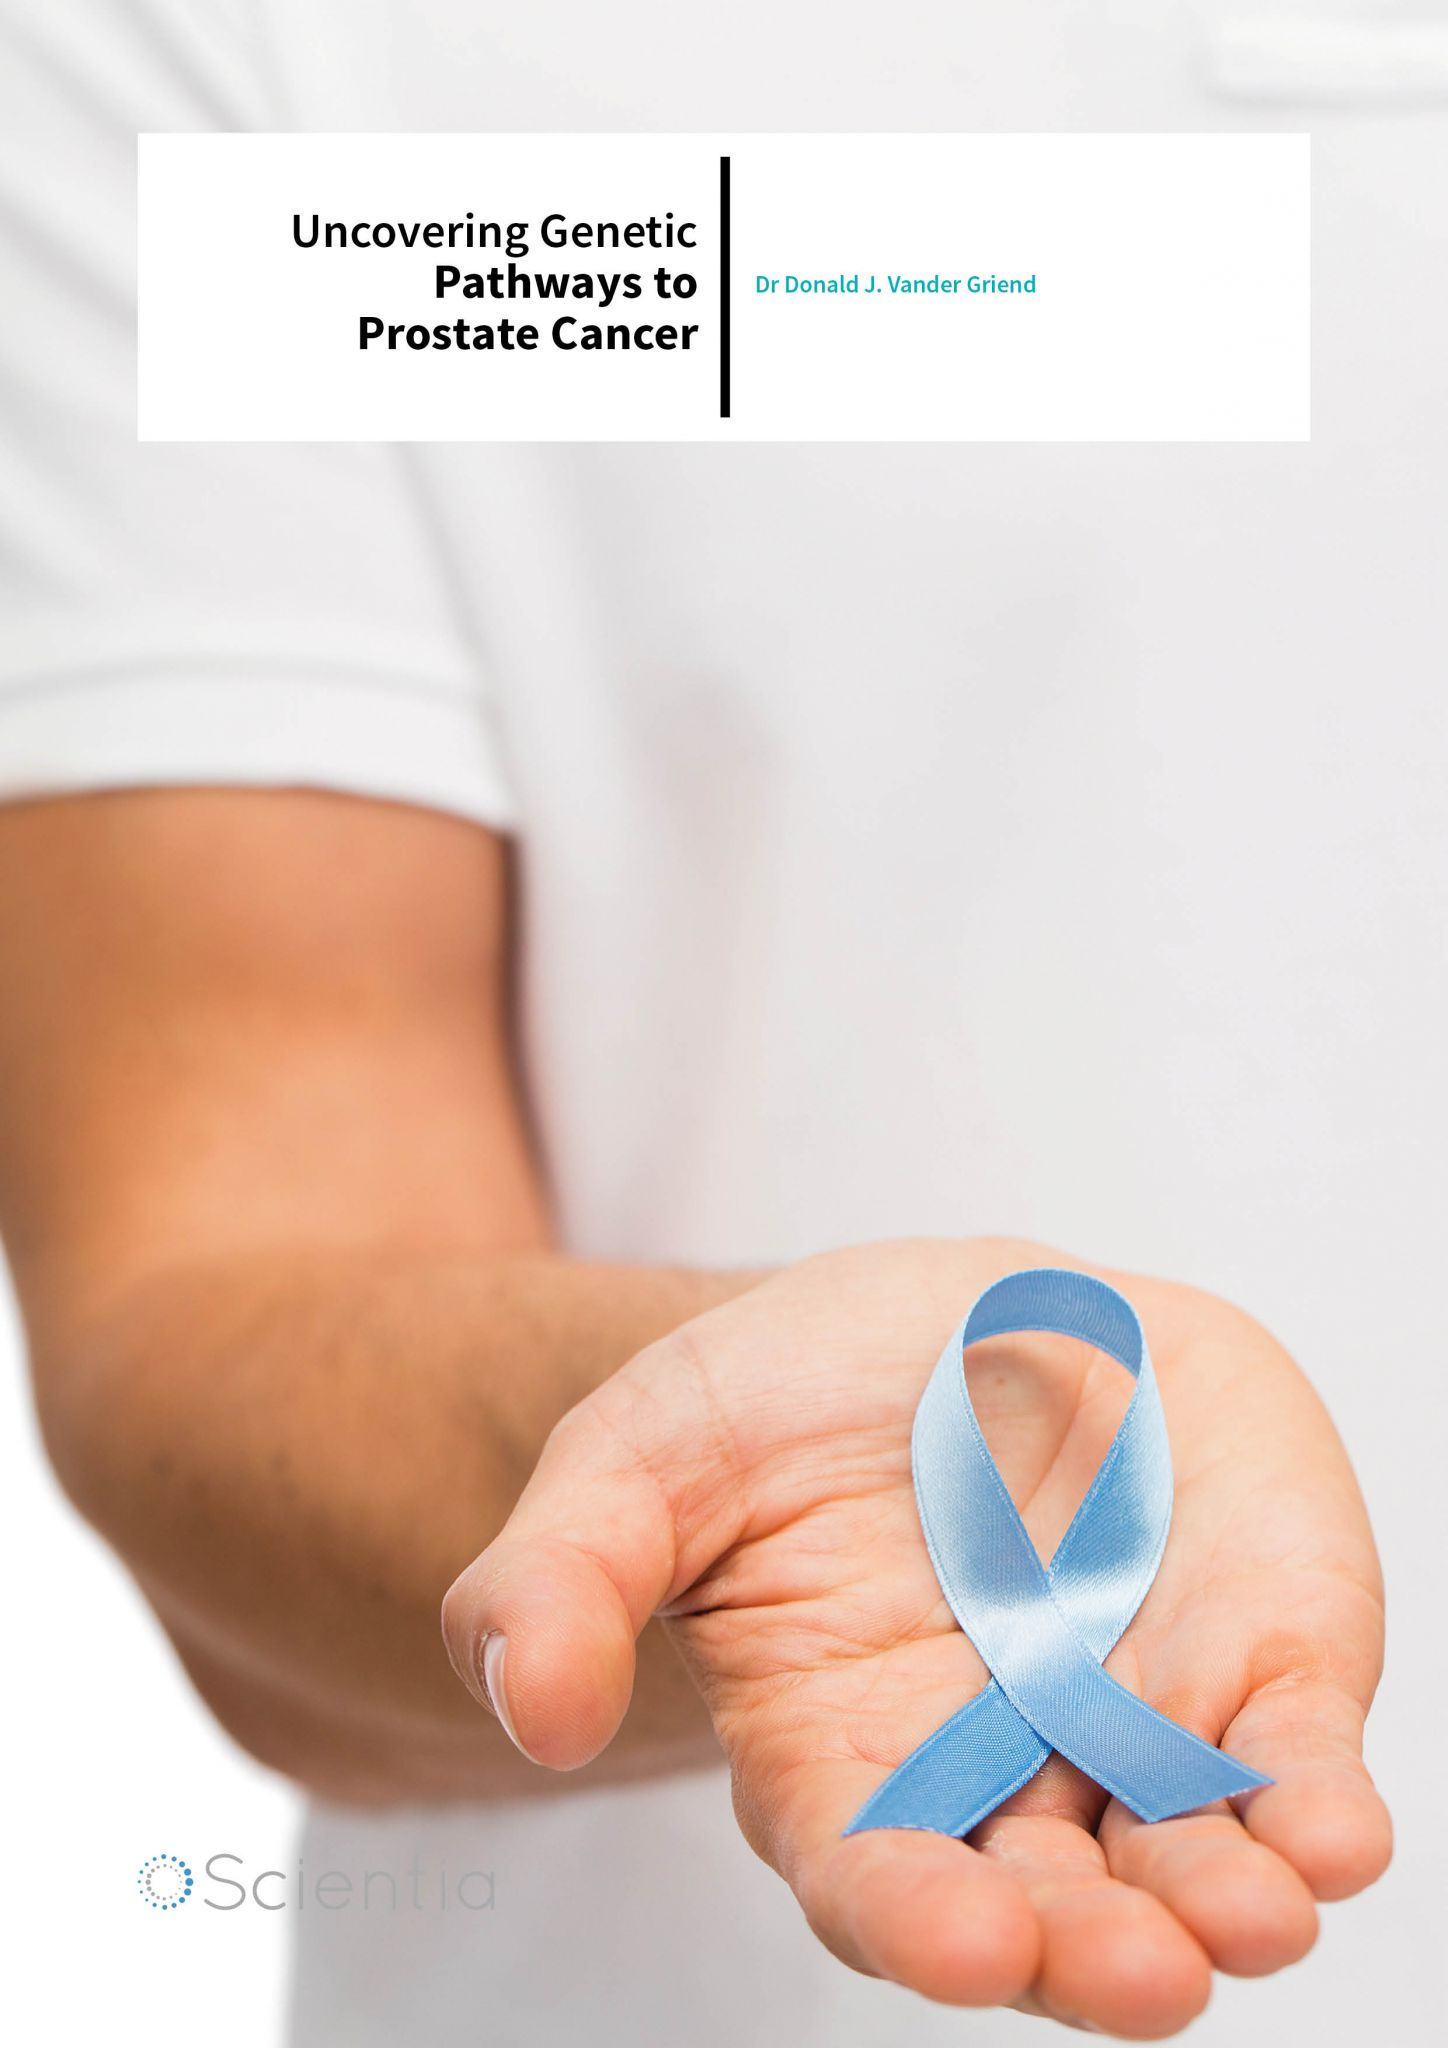 Dr Donald J. Vander Griend – Uncovering Genetic Pathways To Prostate Cancer